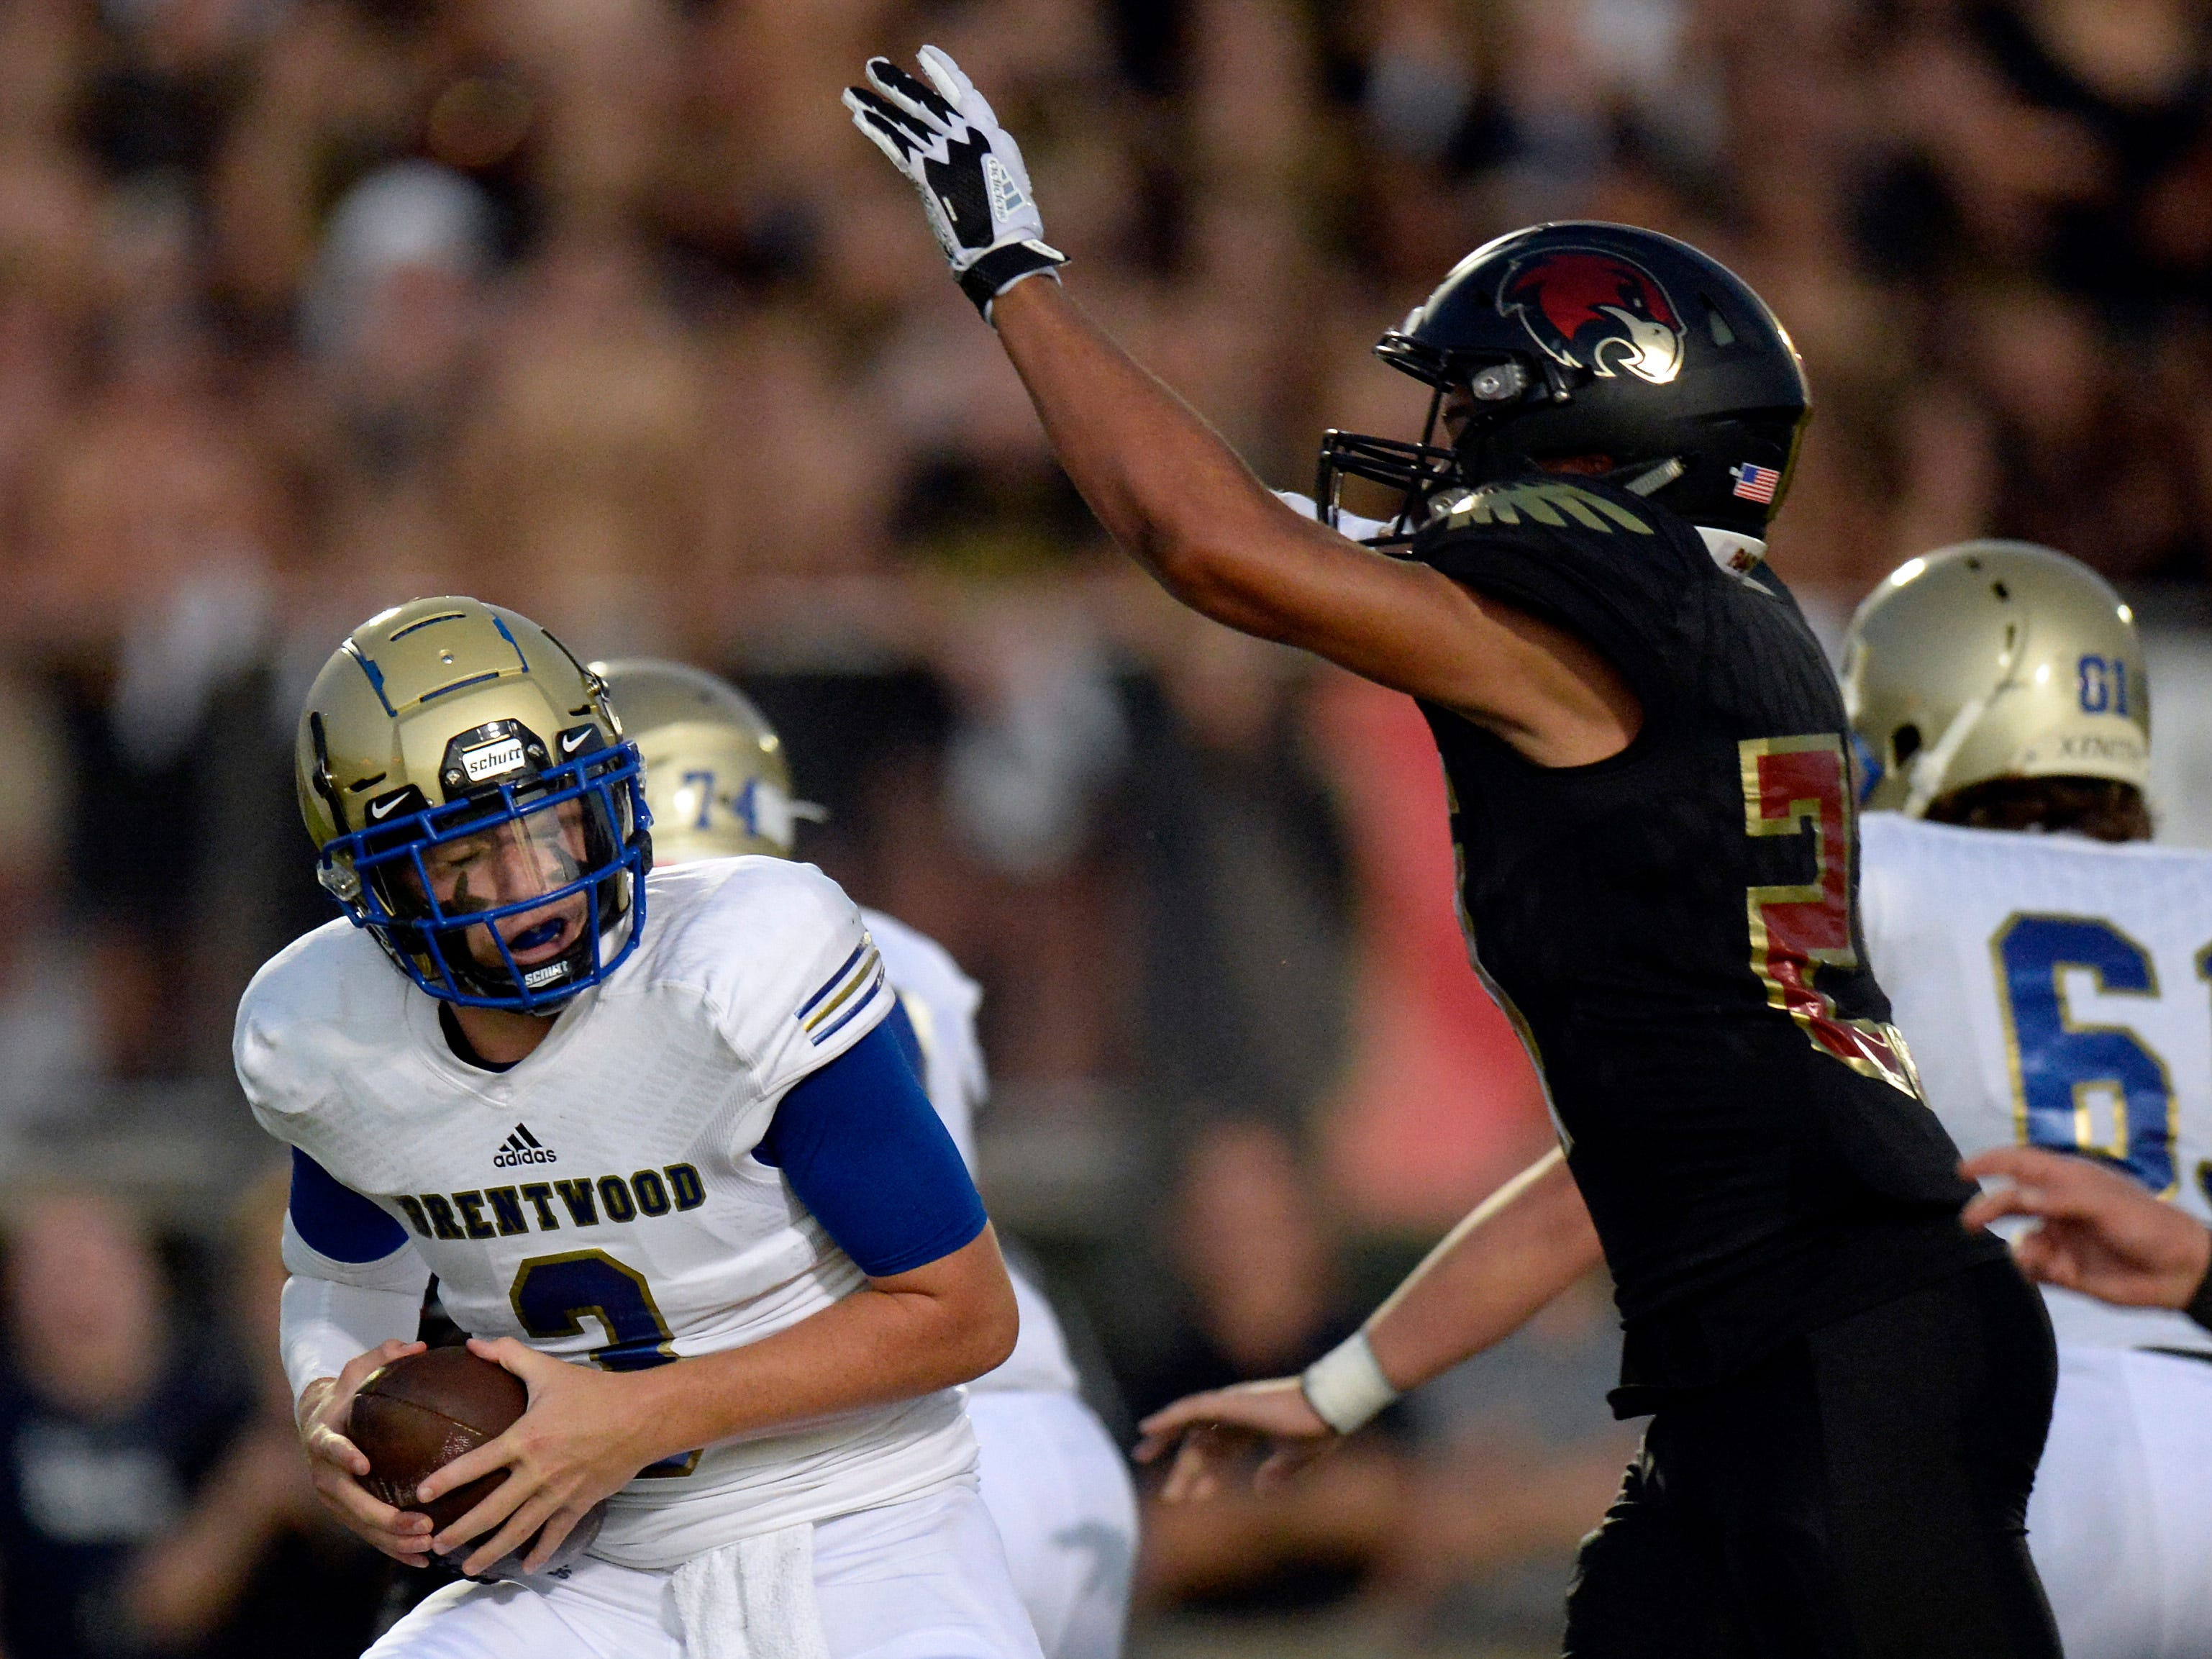 Brentwood quarterback Cade Granzow (3) tries to pass as Ravenwood strong safety Myles Dawson (23) rushes in during the first half of an high school football game Friday, September 14, 2018, in Brentwood, Tenn.